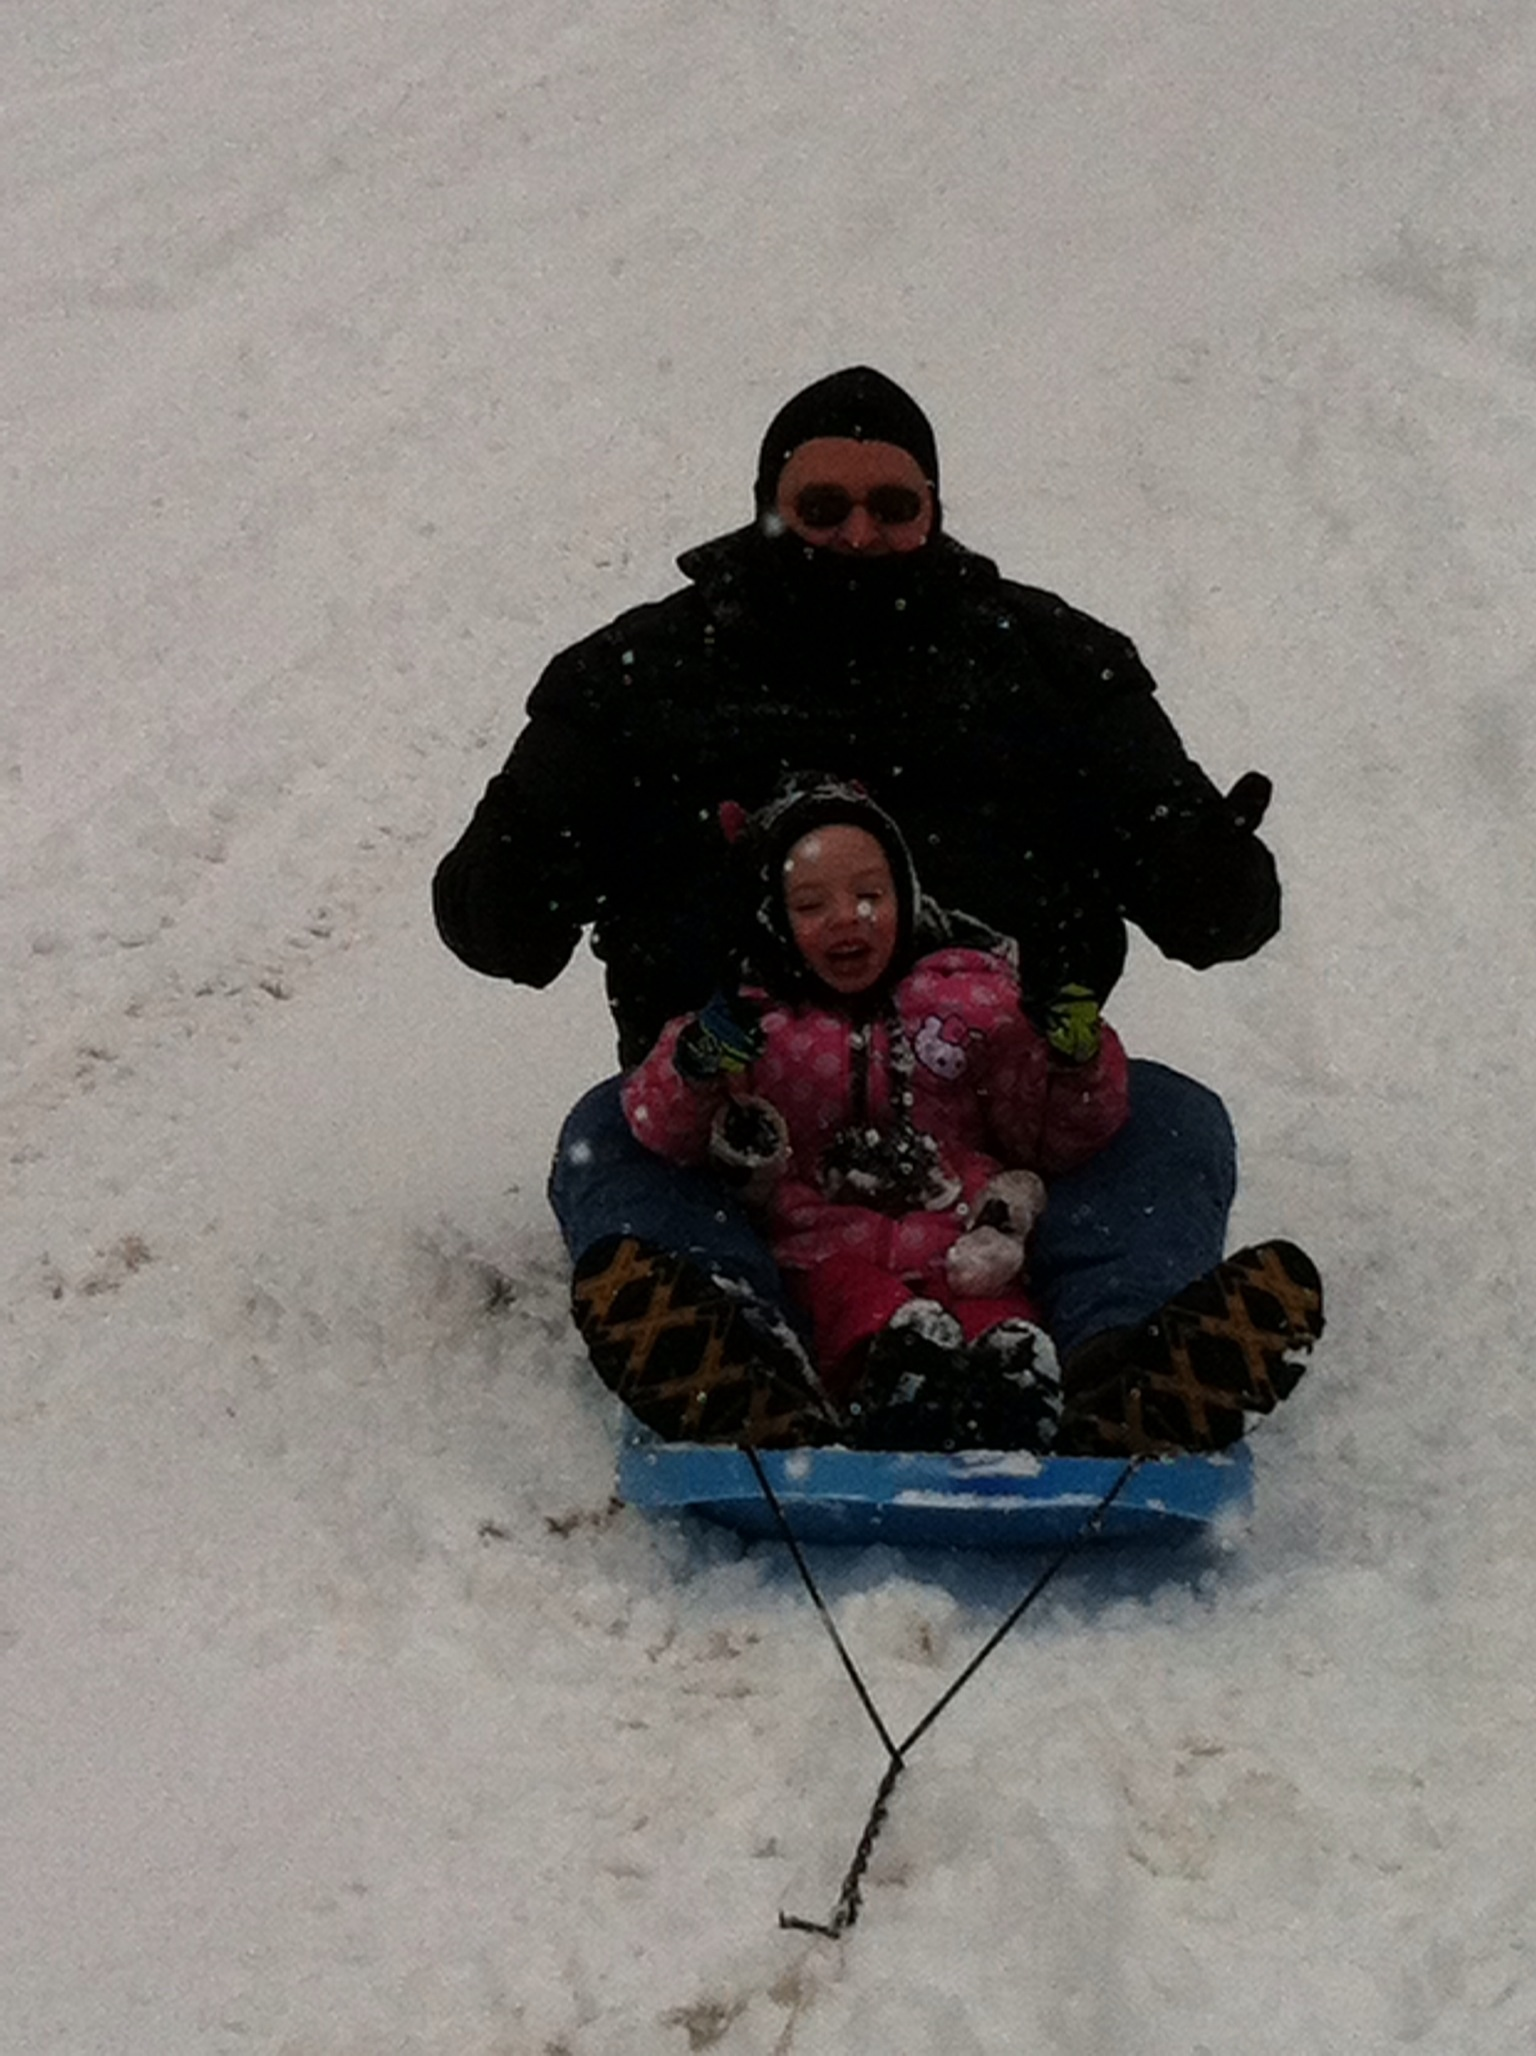 Sledding near Great Falls MT